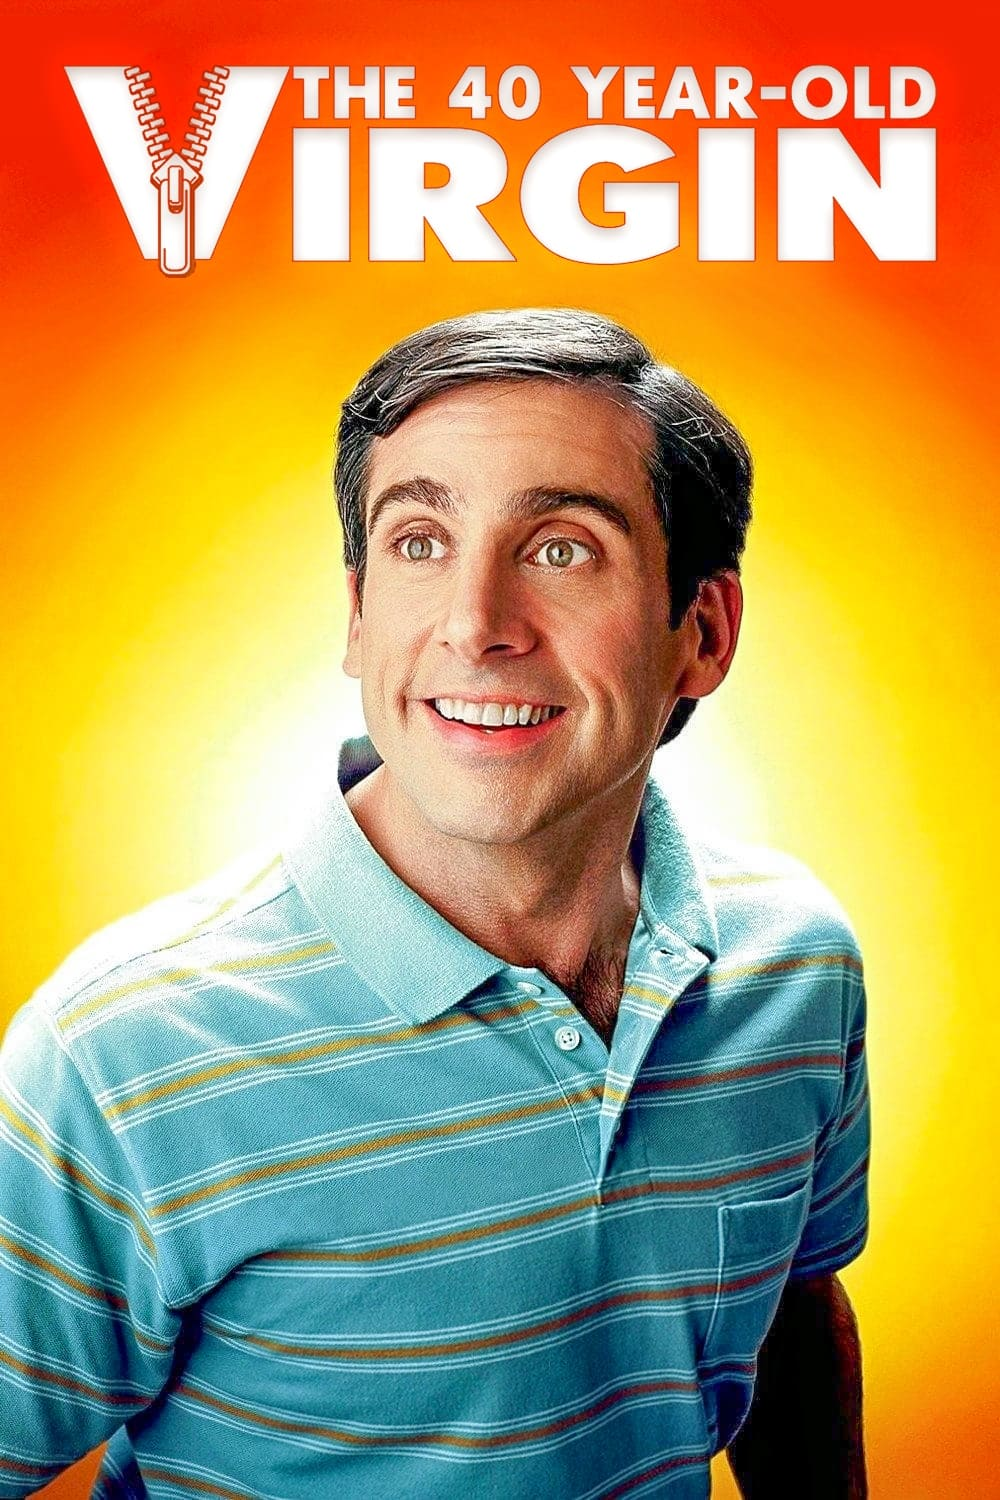 Image The 40 Year Old Virgin